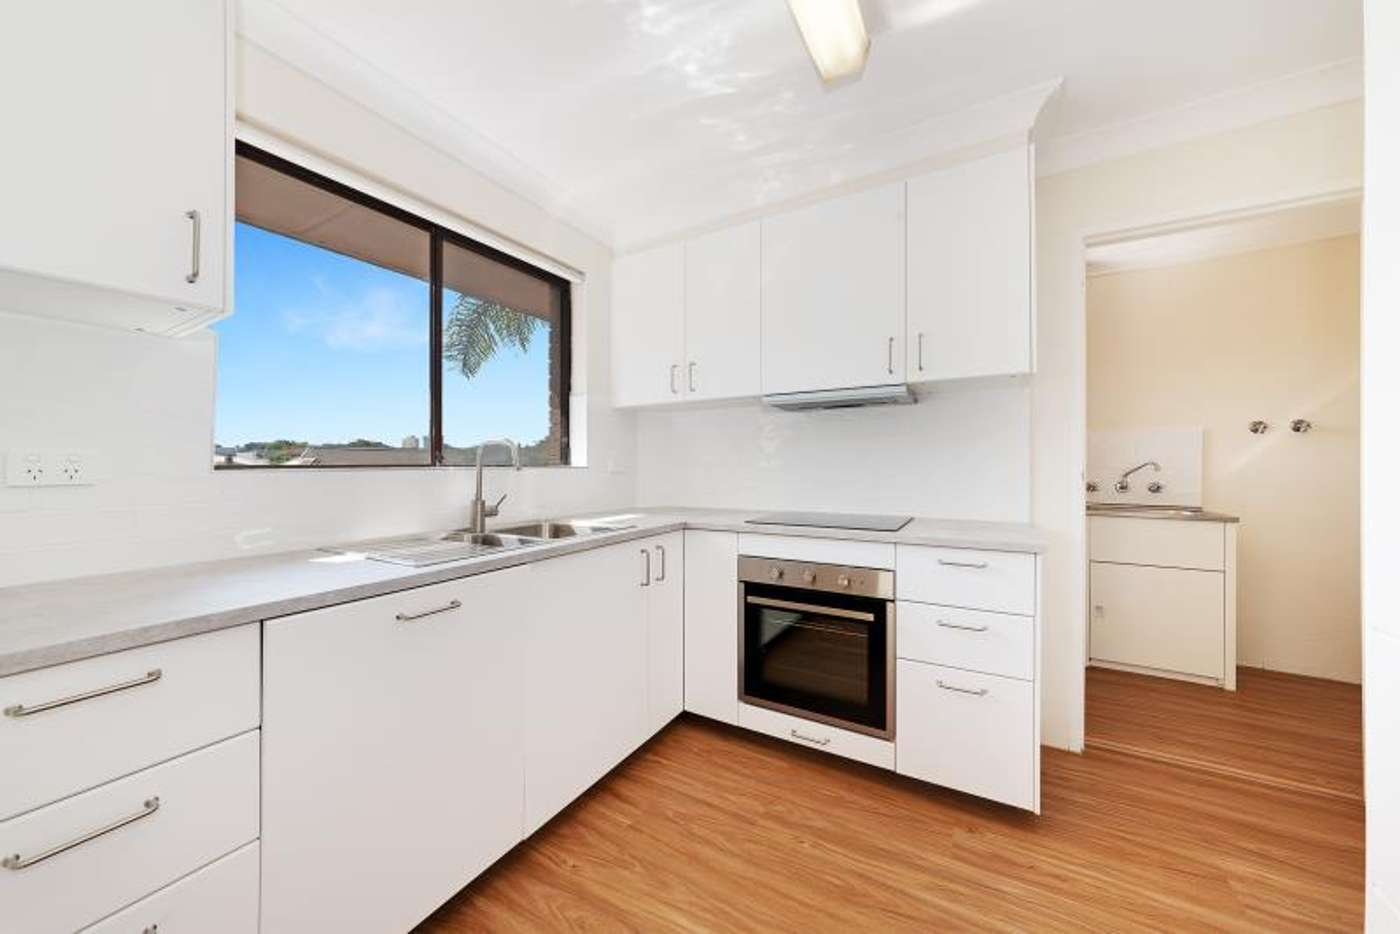 Main view of Homely apartment listing, 8/98 Todman Avenue, Kensington NSW 2033